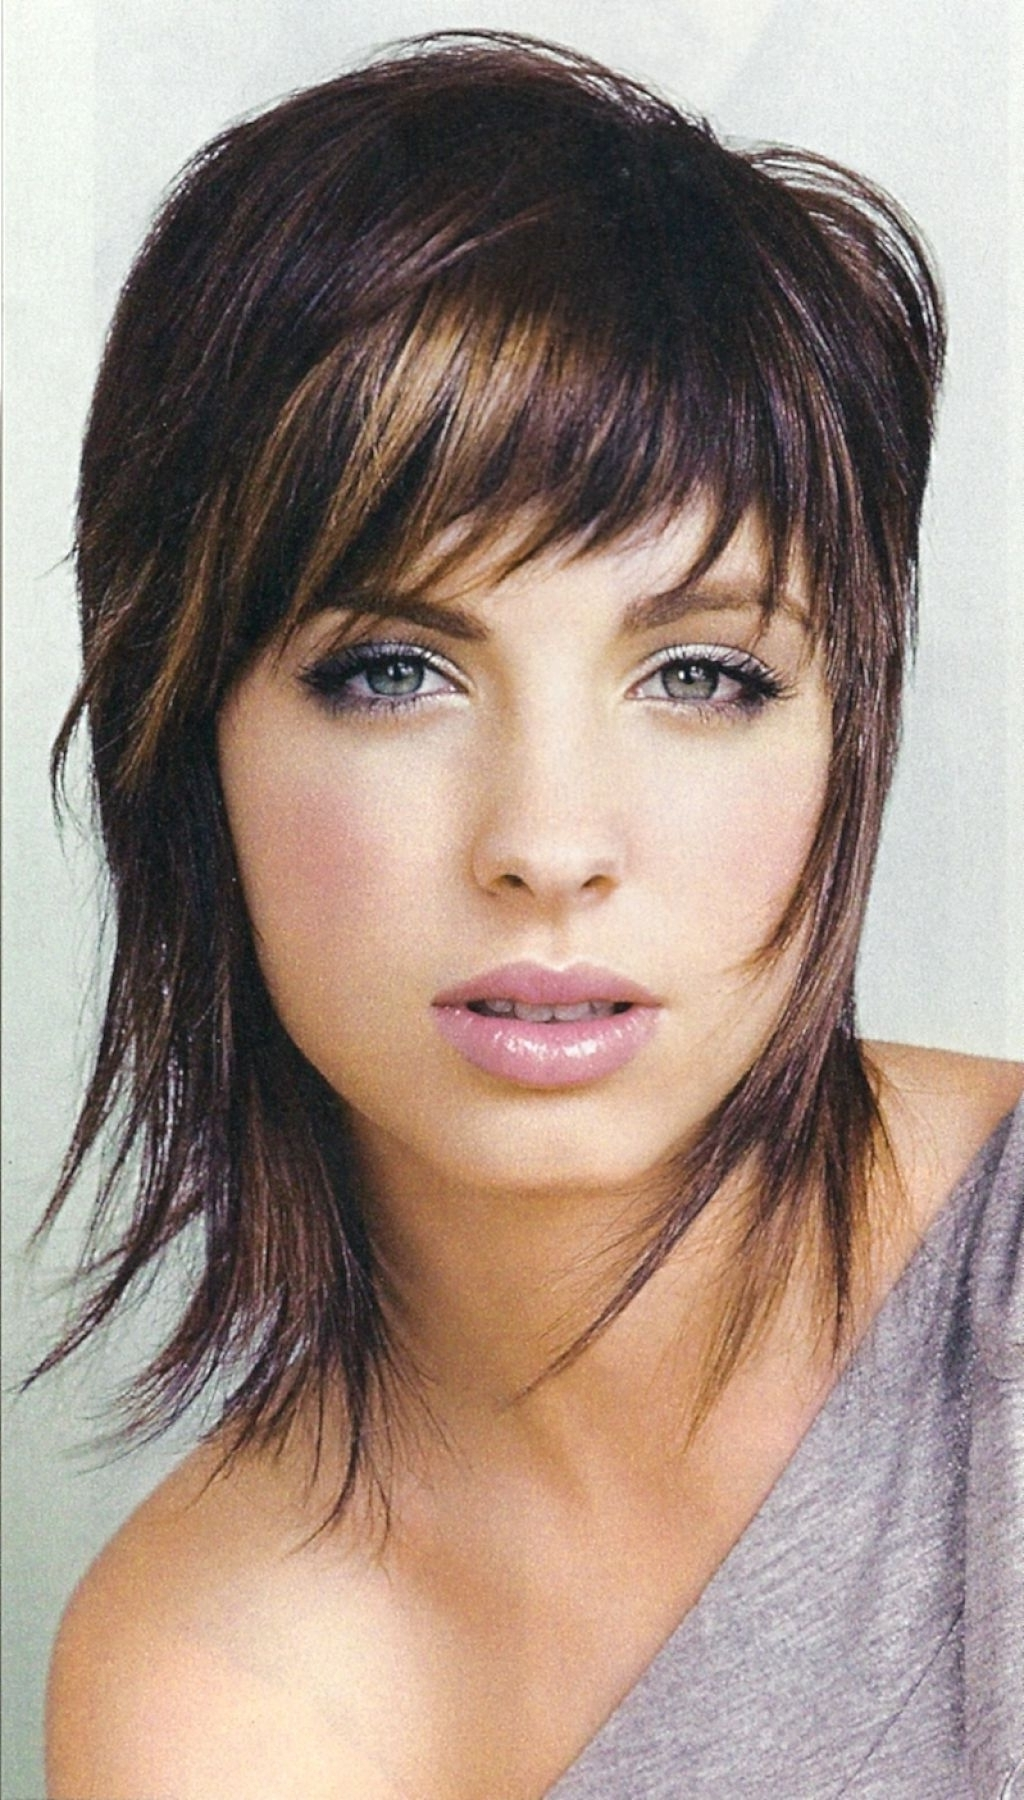 Medium Shaggy Hairstyle For Fine Hair Medium Shag Hairstyles Women For Most Up To Date Shaggy Hairstyles For Fine Hair (View 6 of 15)